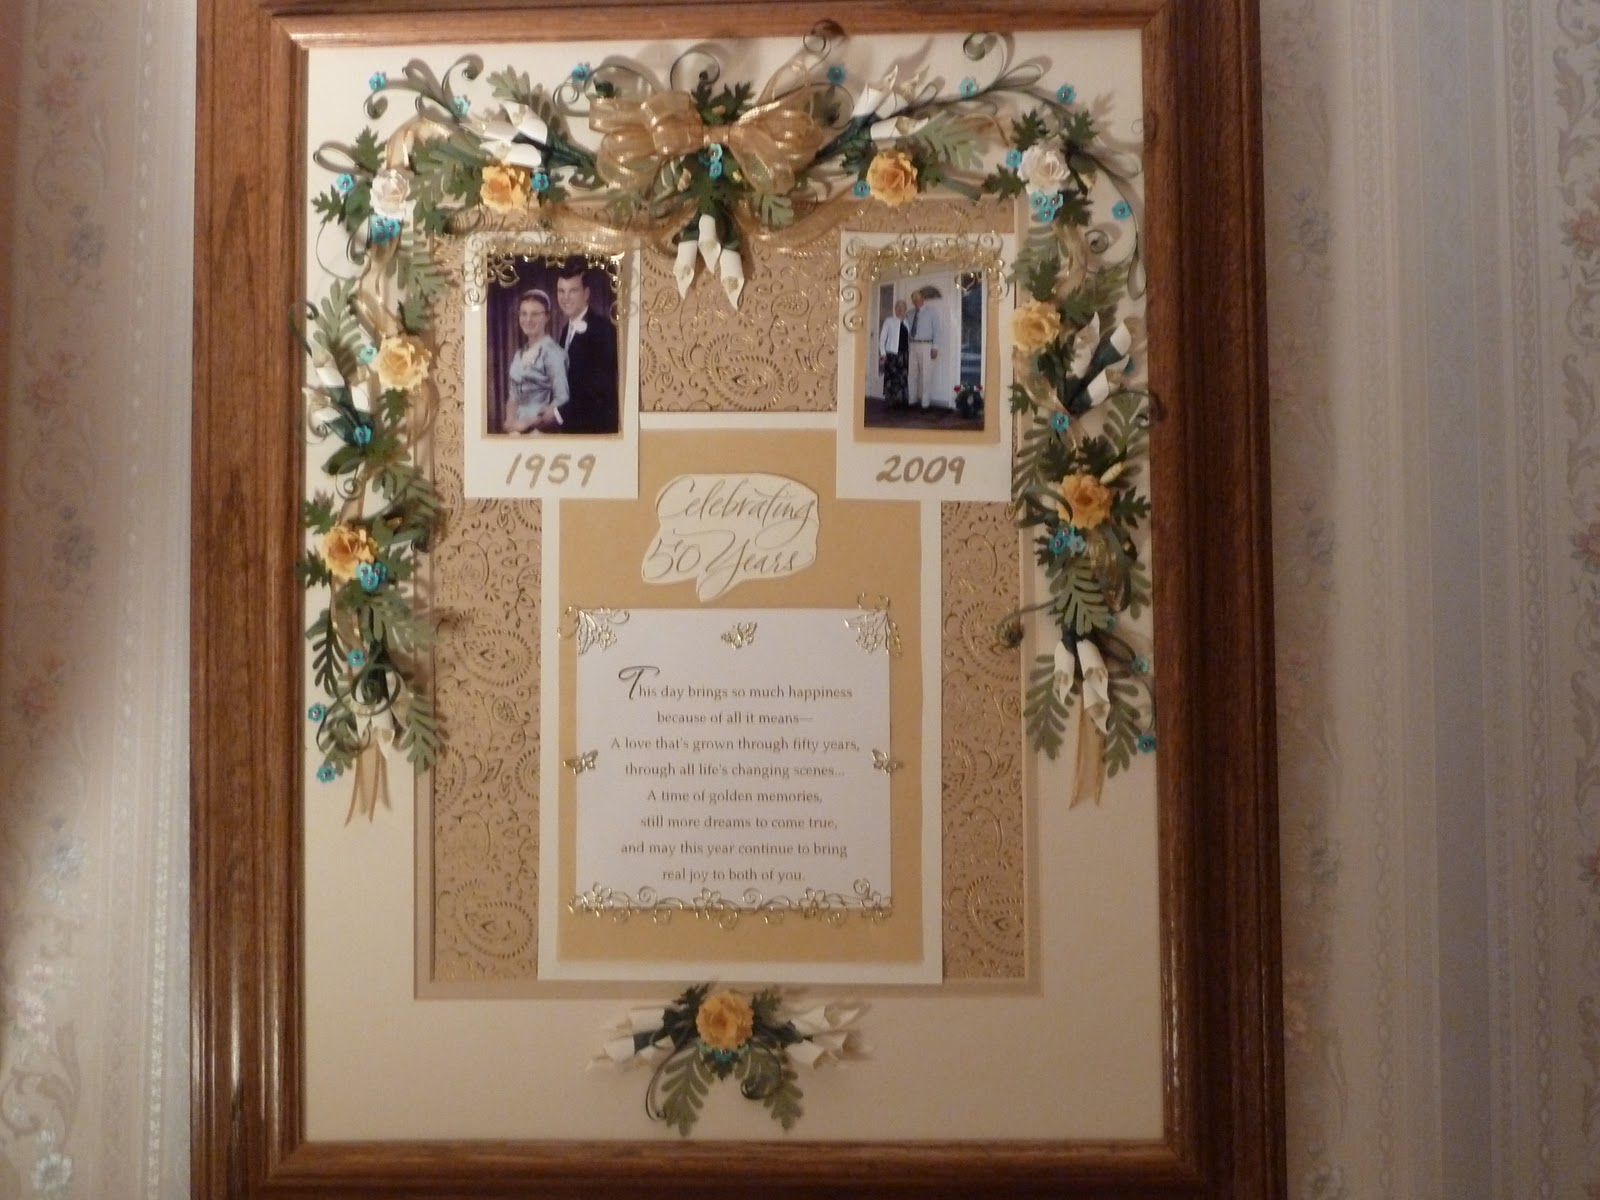 My corner of the world: 50th Wedding Anniversary Gift